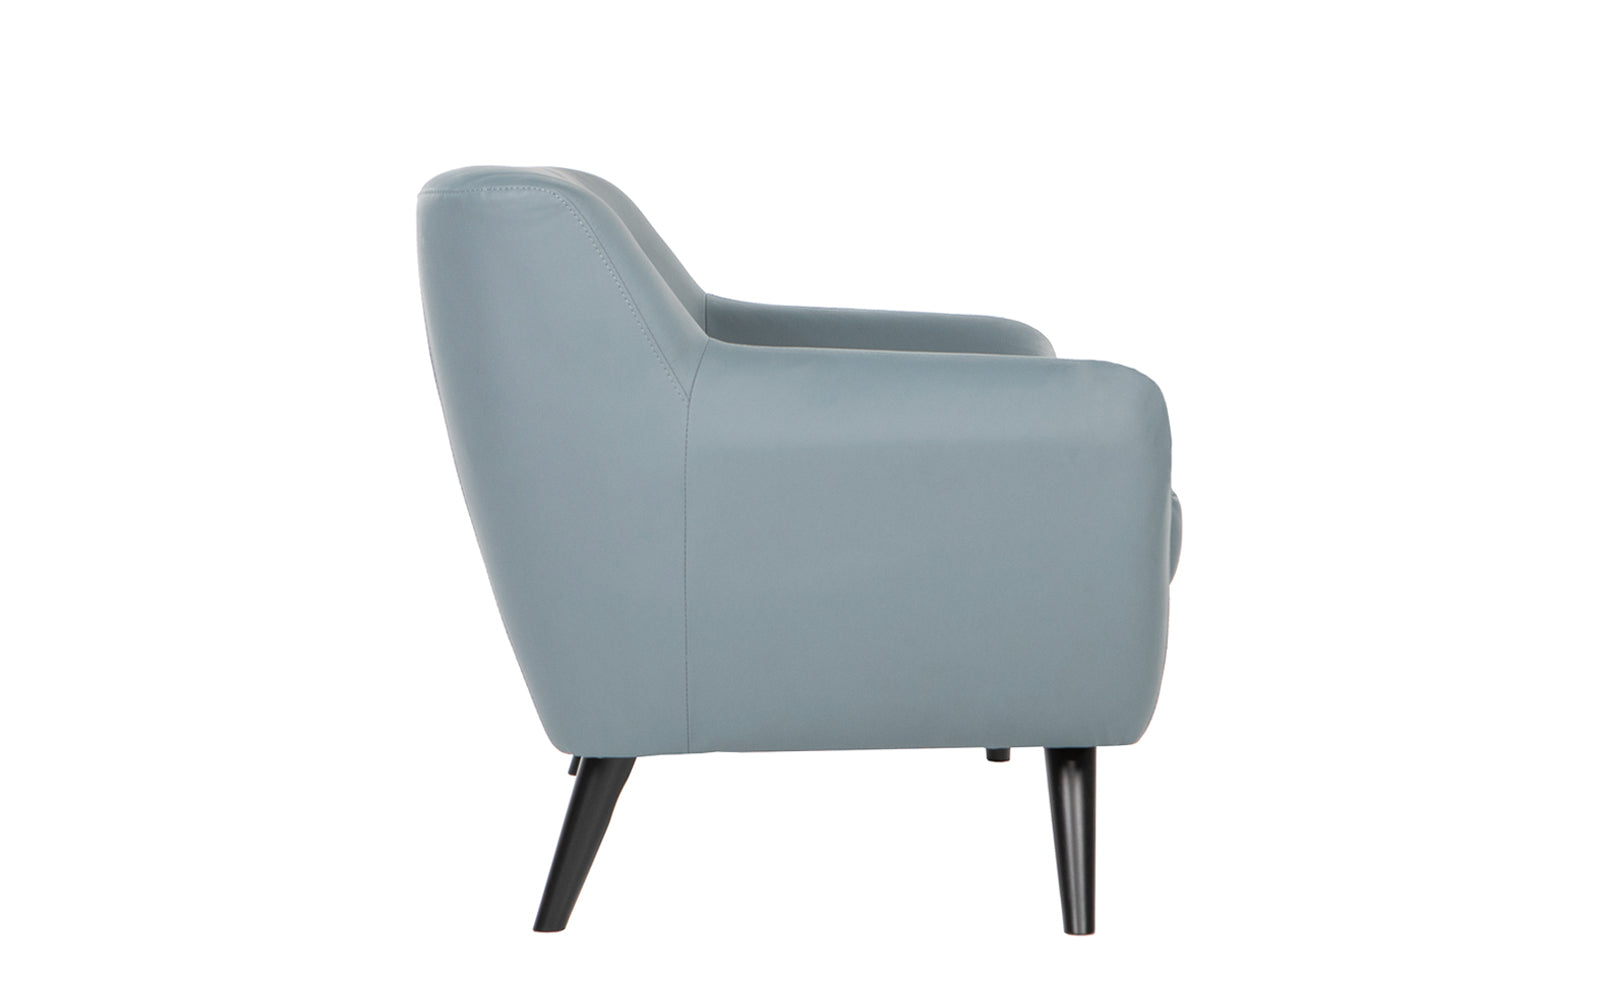 Nico Mid Century Modern Bonded Leather Chair Side Profile ...